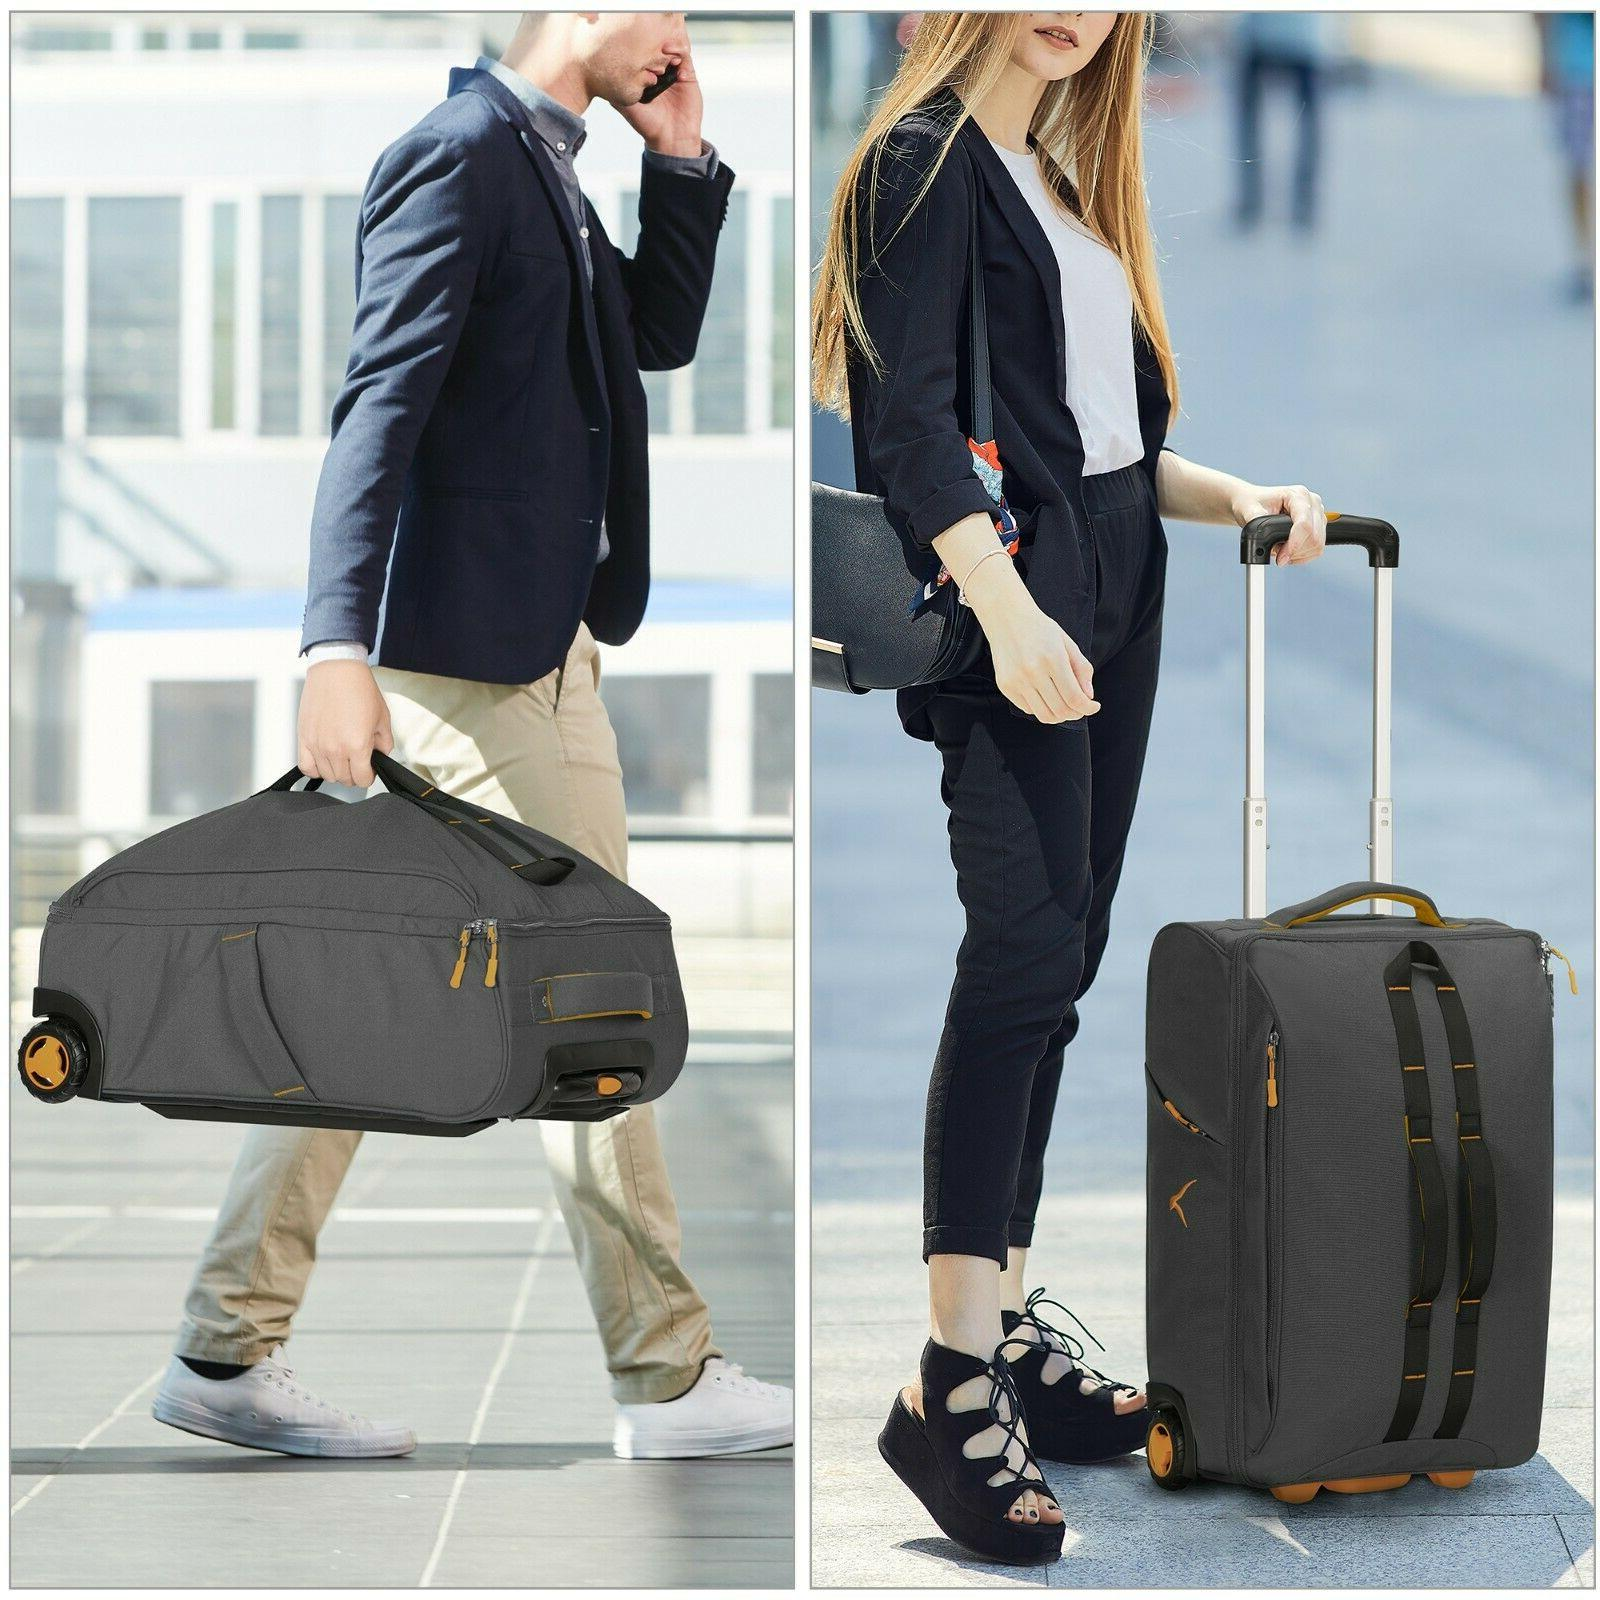 Hynes Rolling Luggage Softside Travel Gear